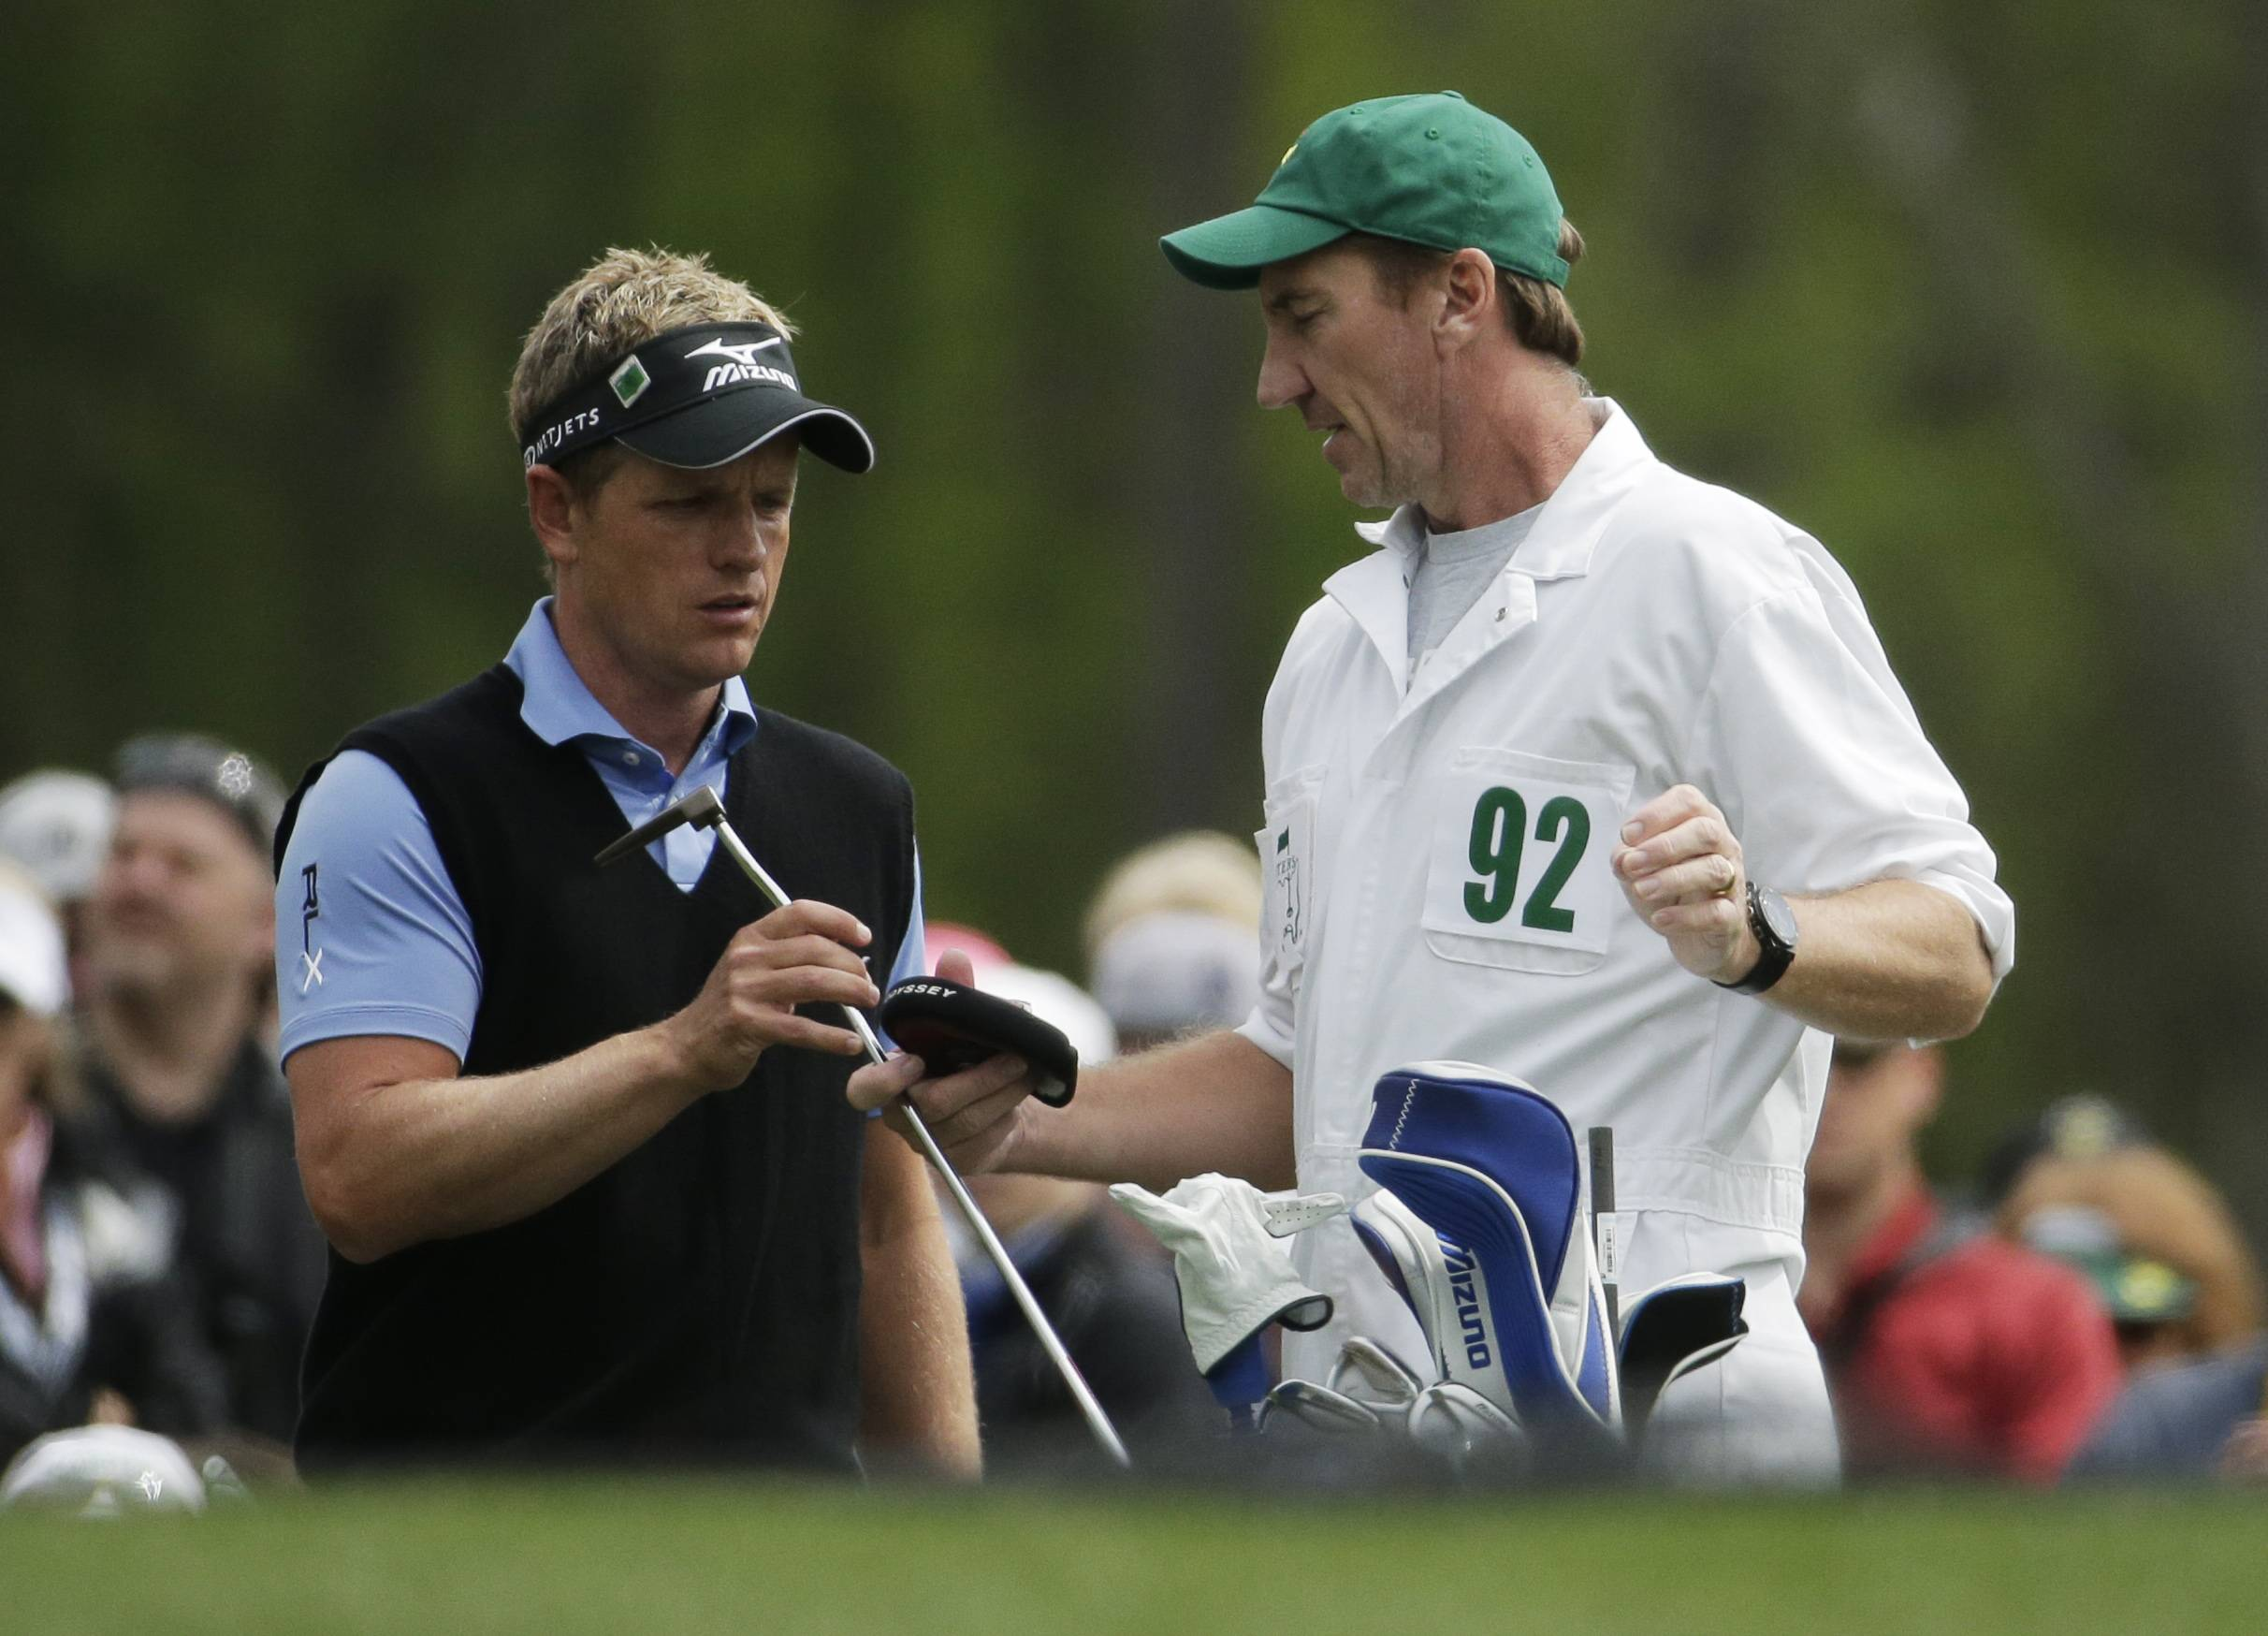 Luke Donald, of England, gets a club from his caddie on the 12th green during a practice round for the Masters golf tournament Tuesday, April 8, 2014, in Augusta, Ga.